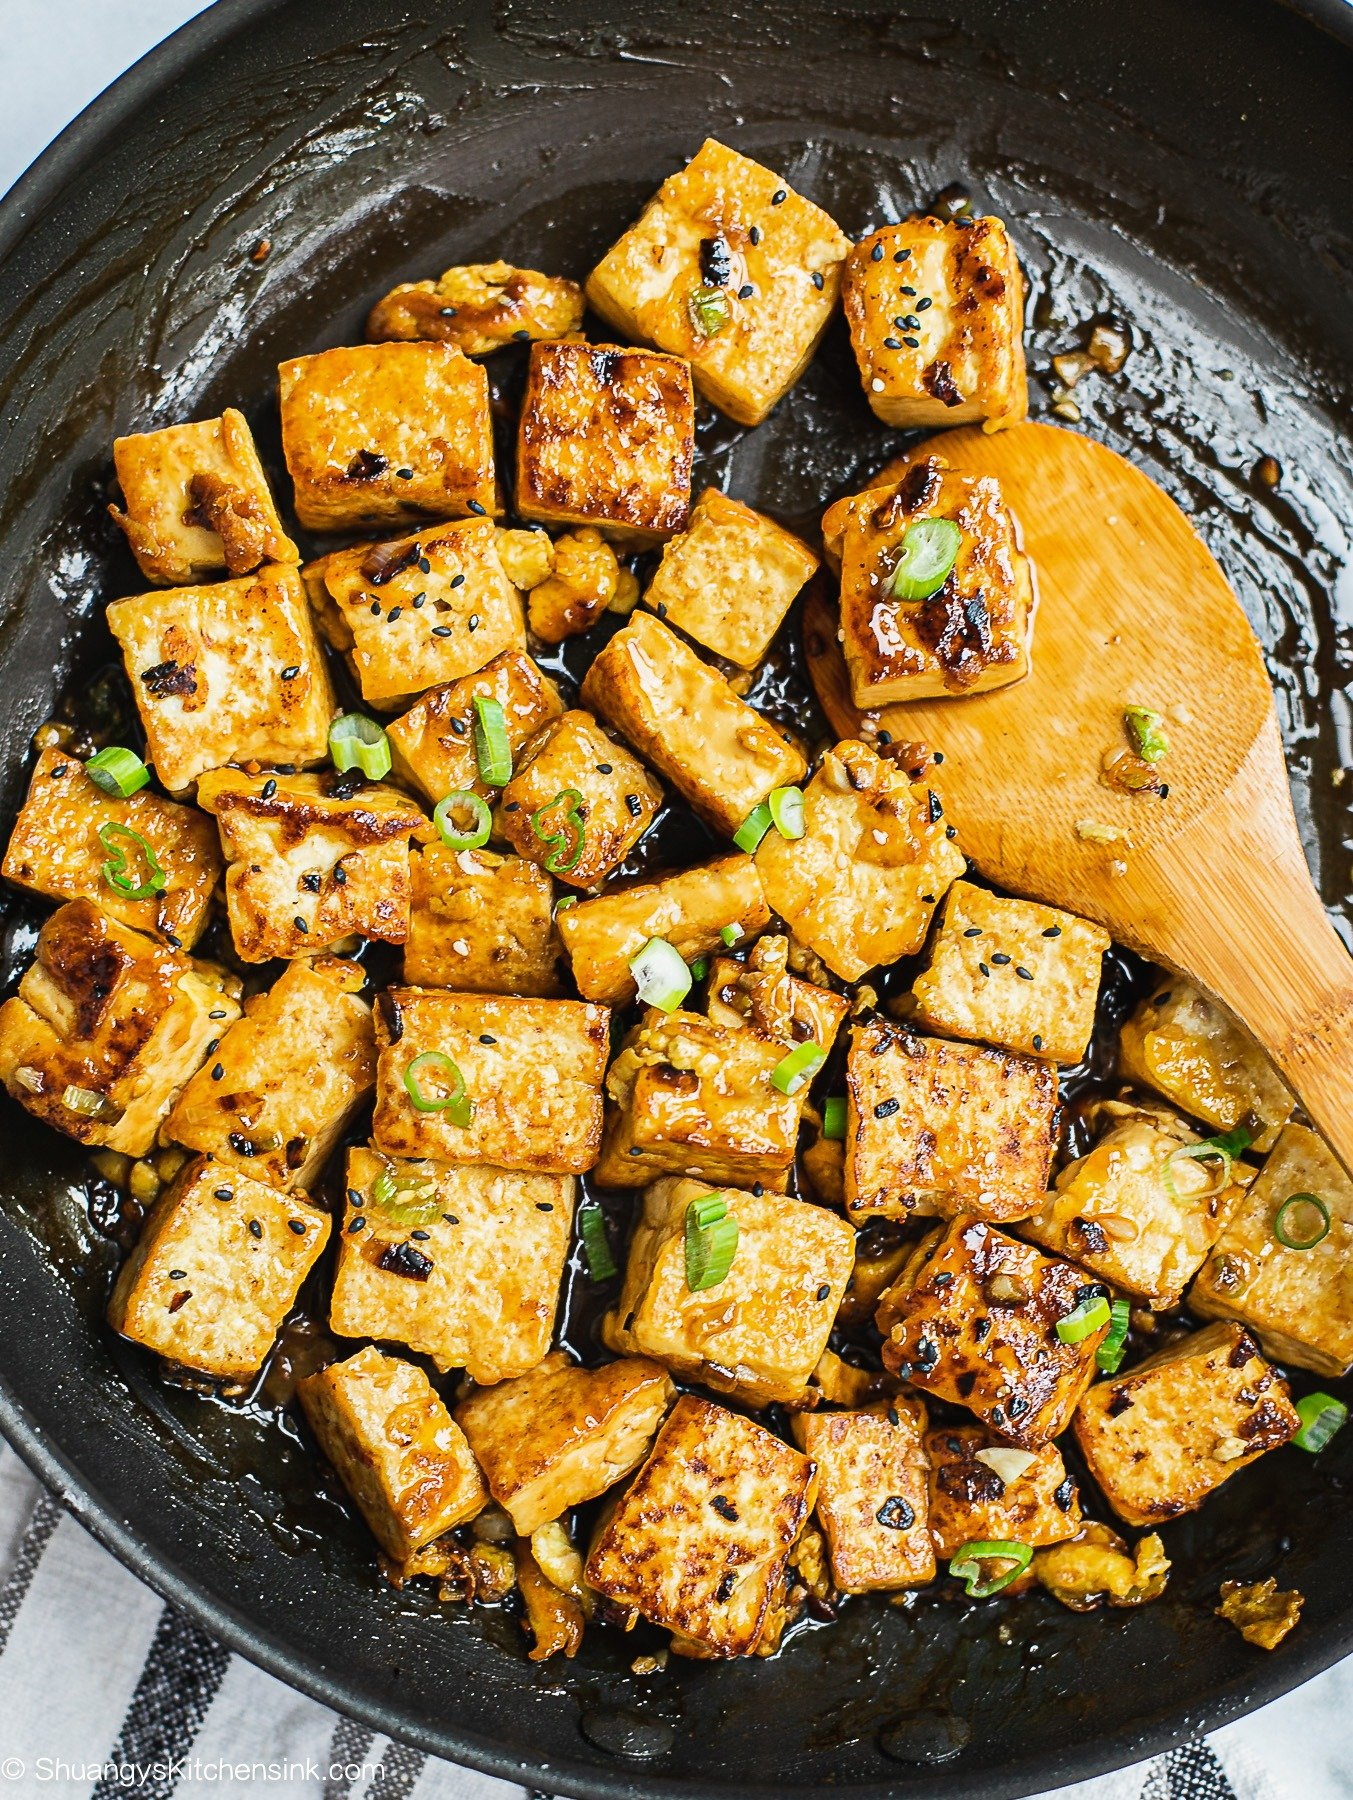 A pan of Asian Garlic Tofu stir fry freshly cooked and glazed with soy garlic sauce. Topped with scallion.